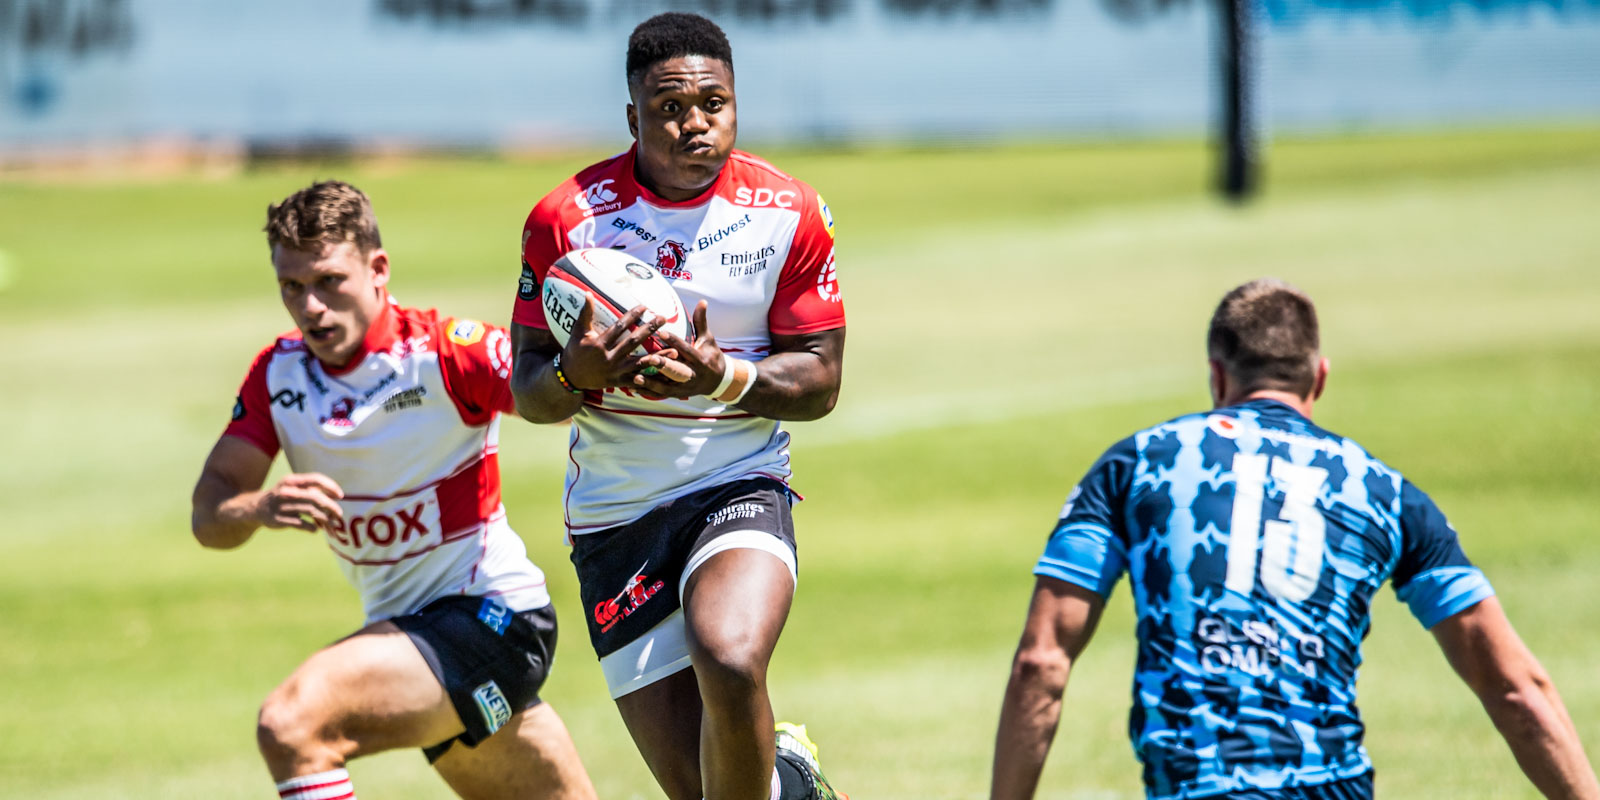 Wandisile Simelane on attack for the Xerox Lions